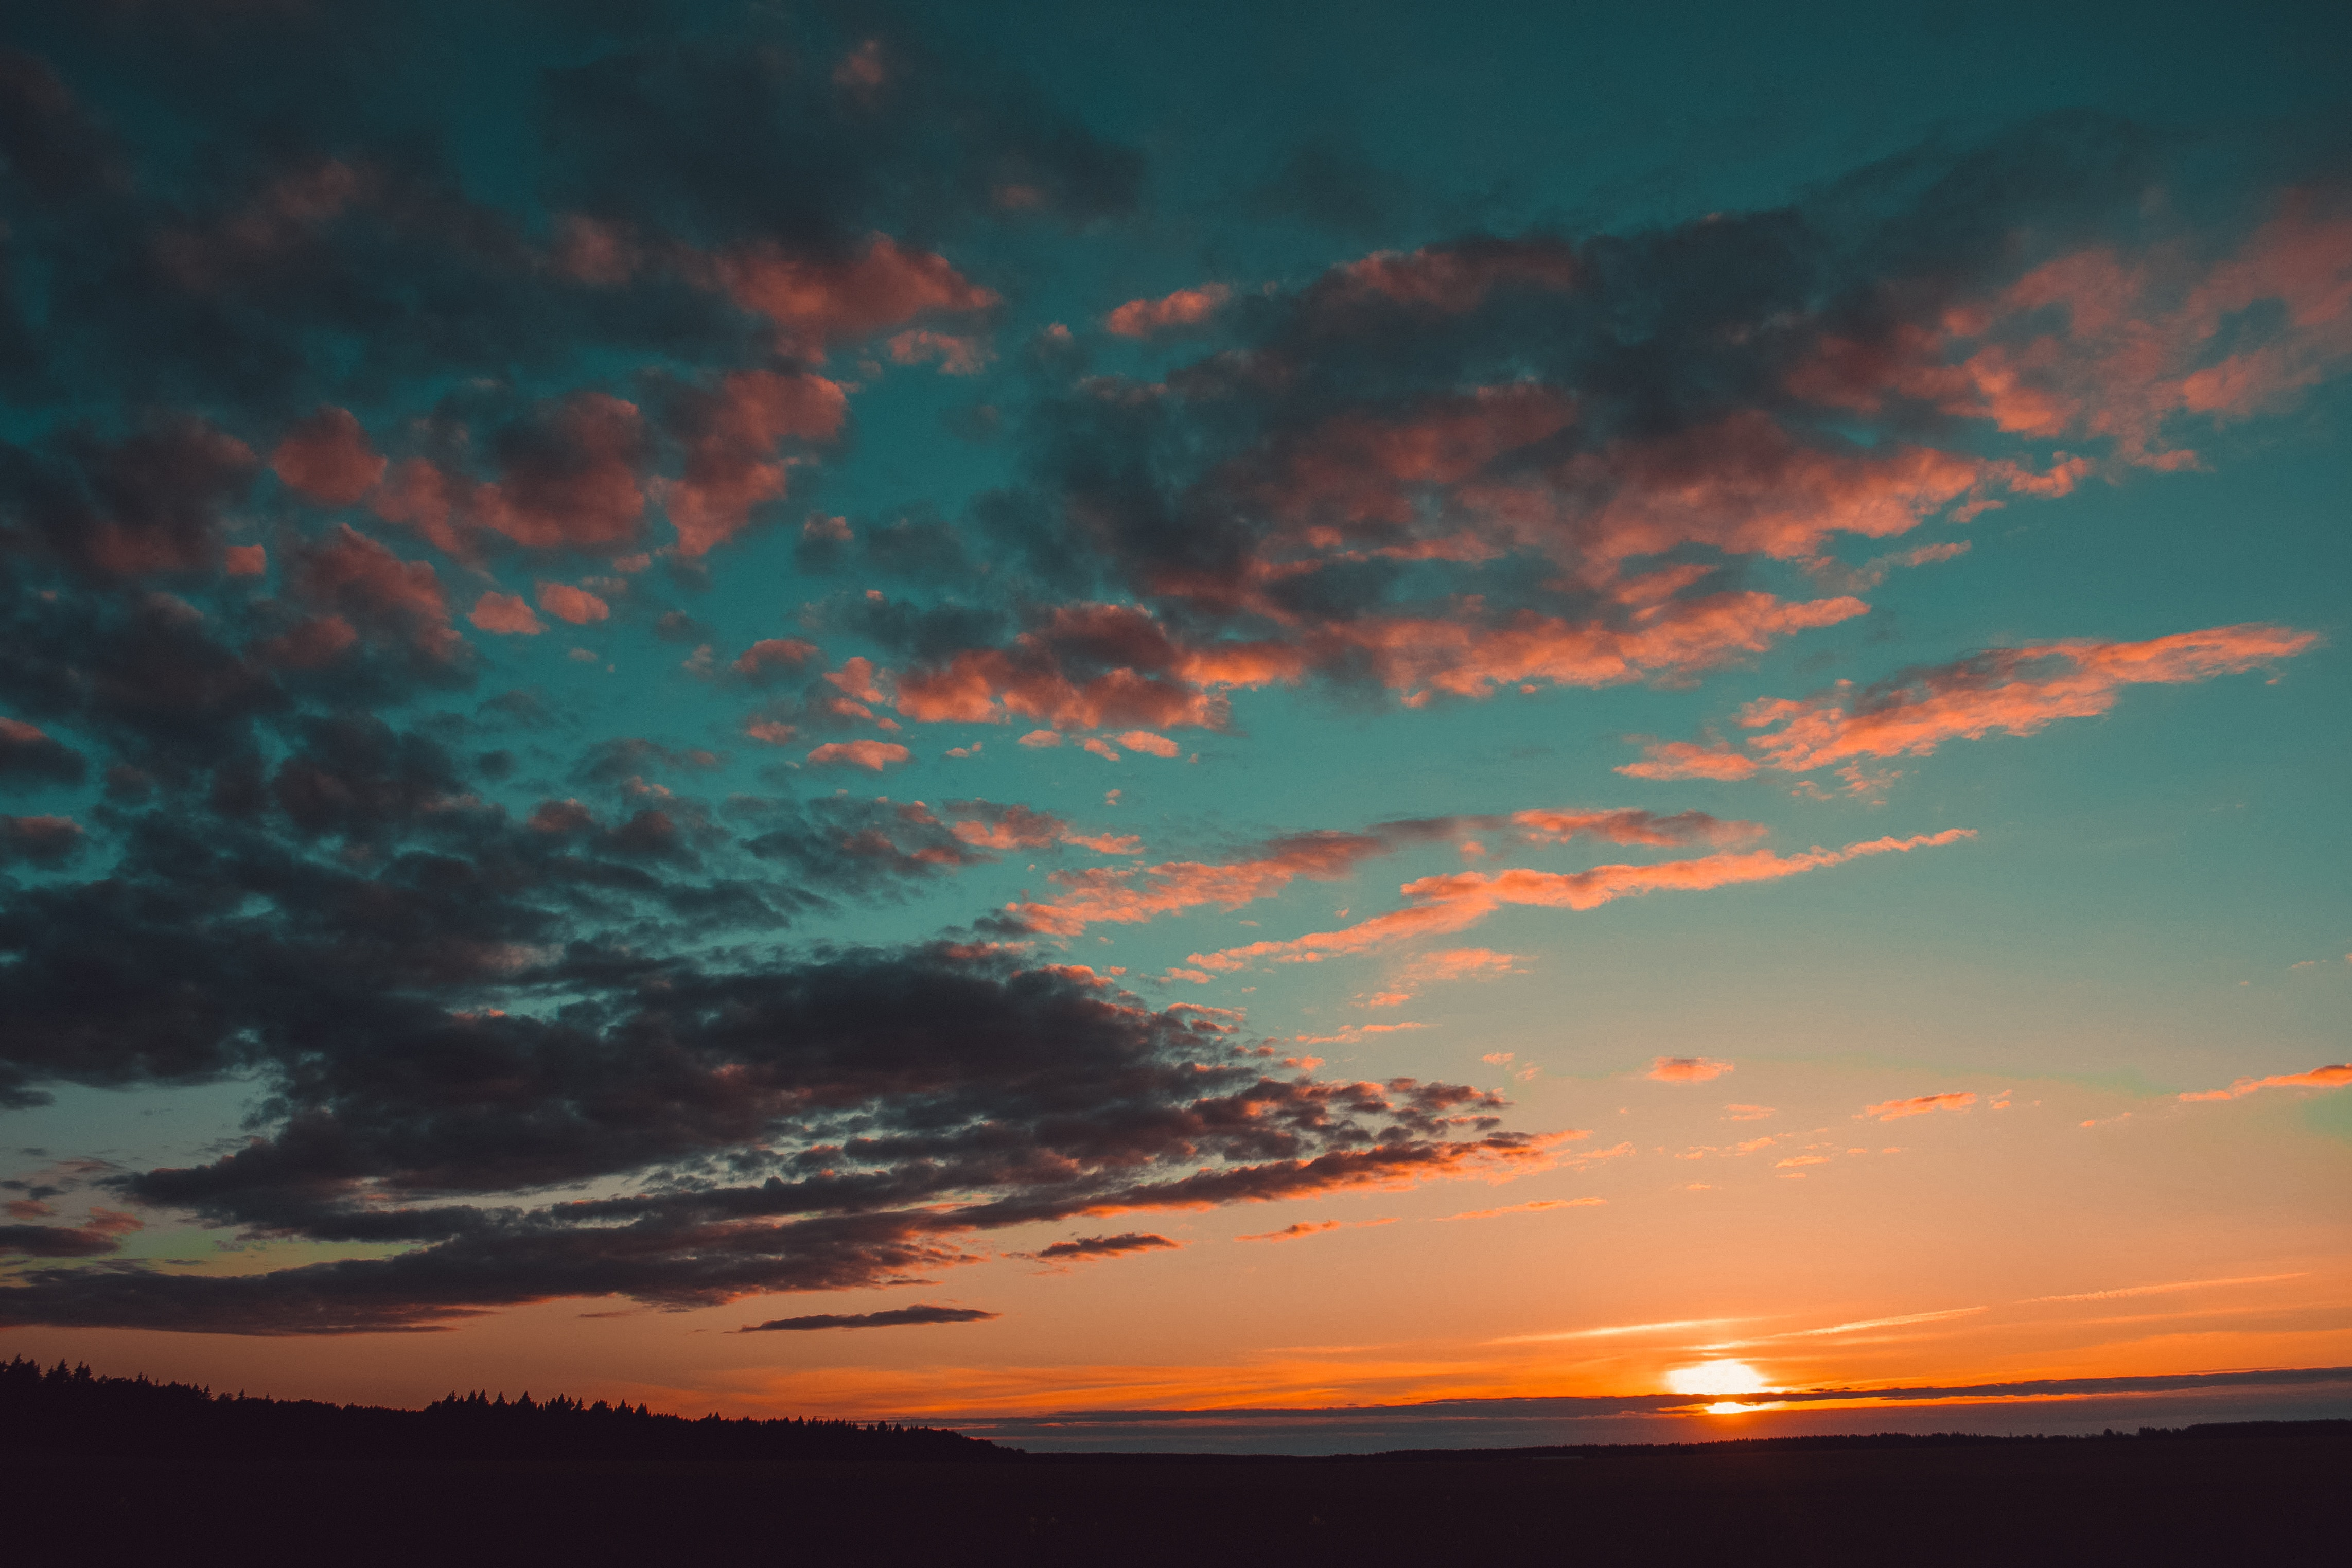 Blue and Orange Skies, Clouds, Darkness, Dusk, Environment, HQ Photo